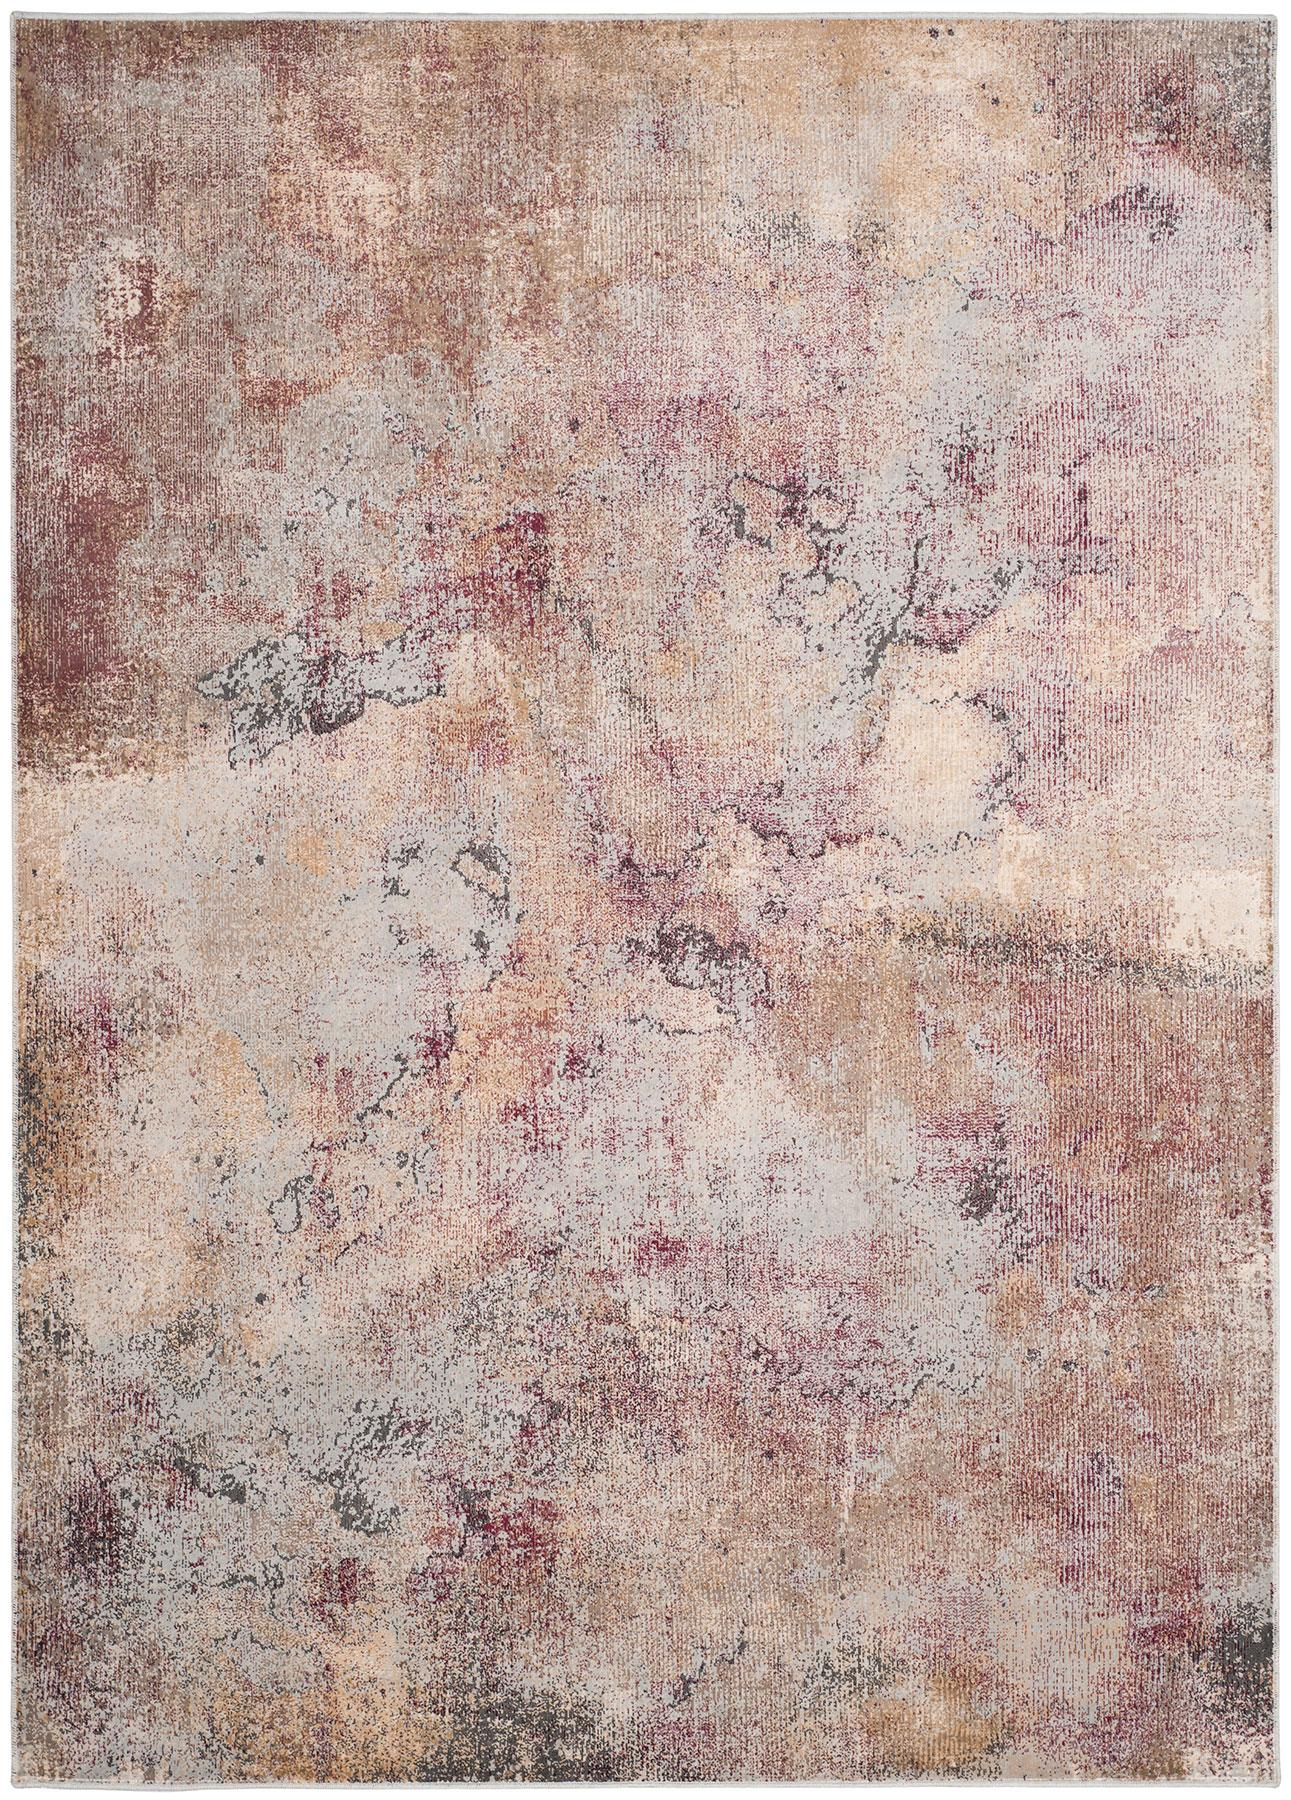 Rug Cnv765 5770 Constellation Vintage Area Rugs By Safavieh